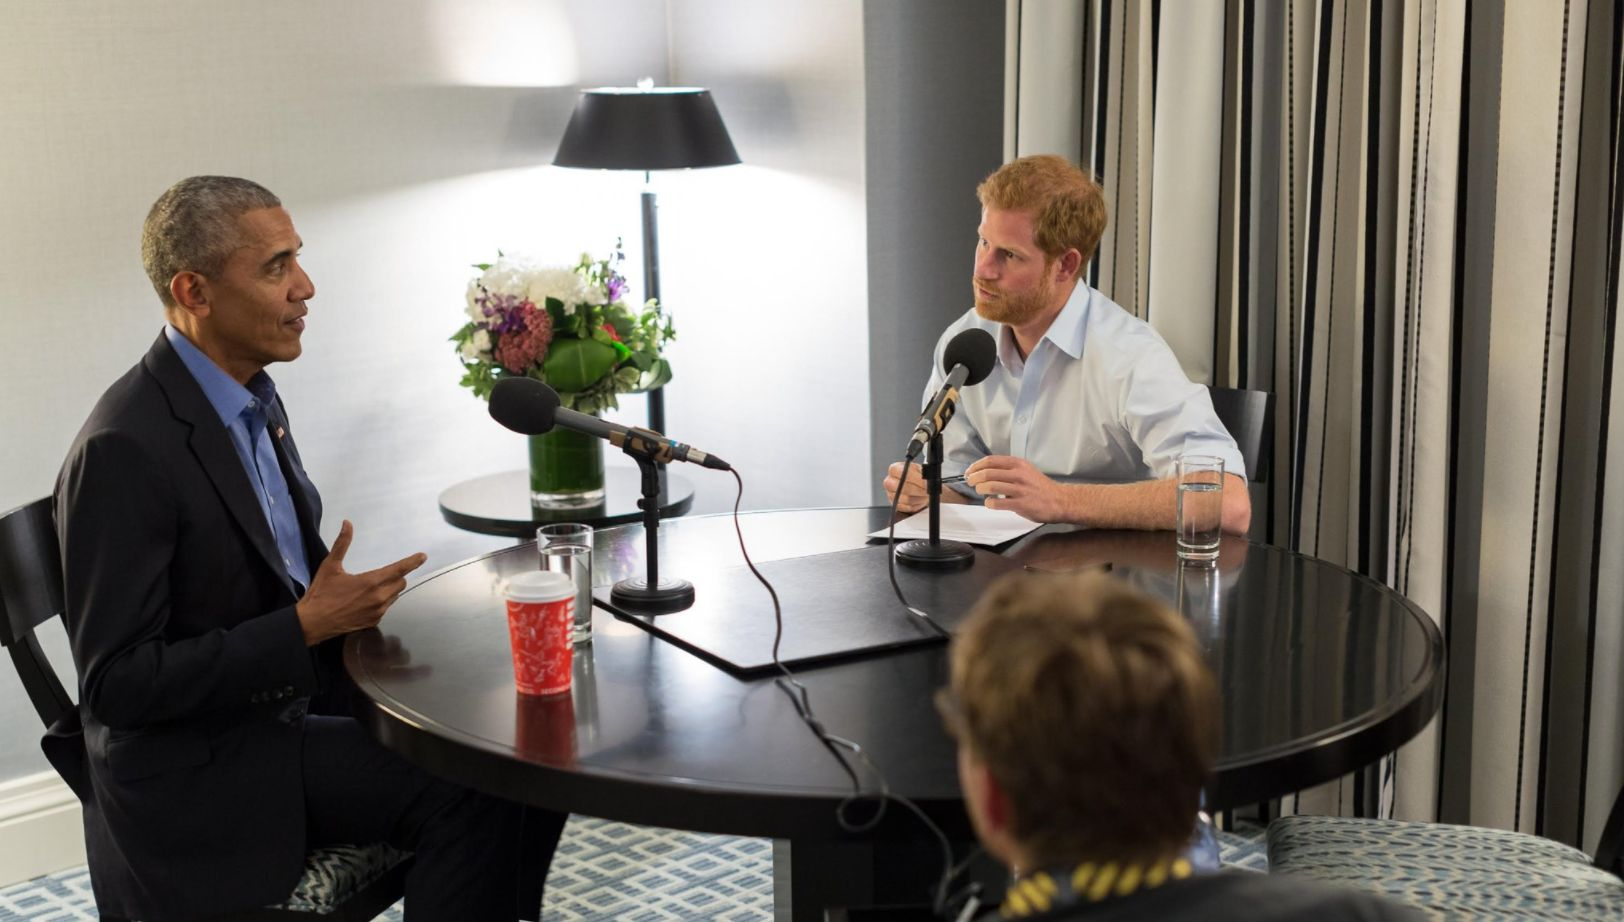 Barack Obama Makes Veiled Attack On Trump In Prince Harry